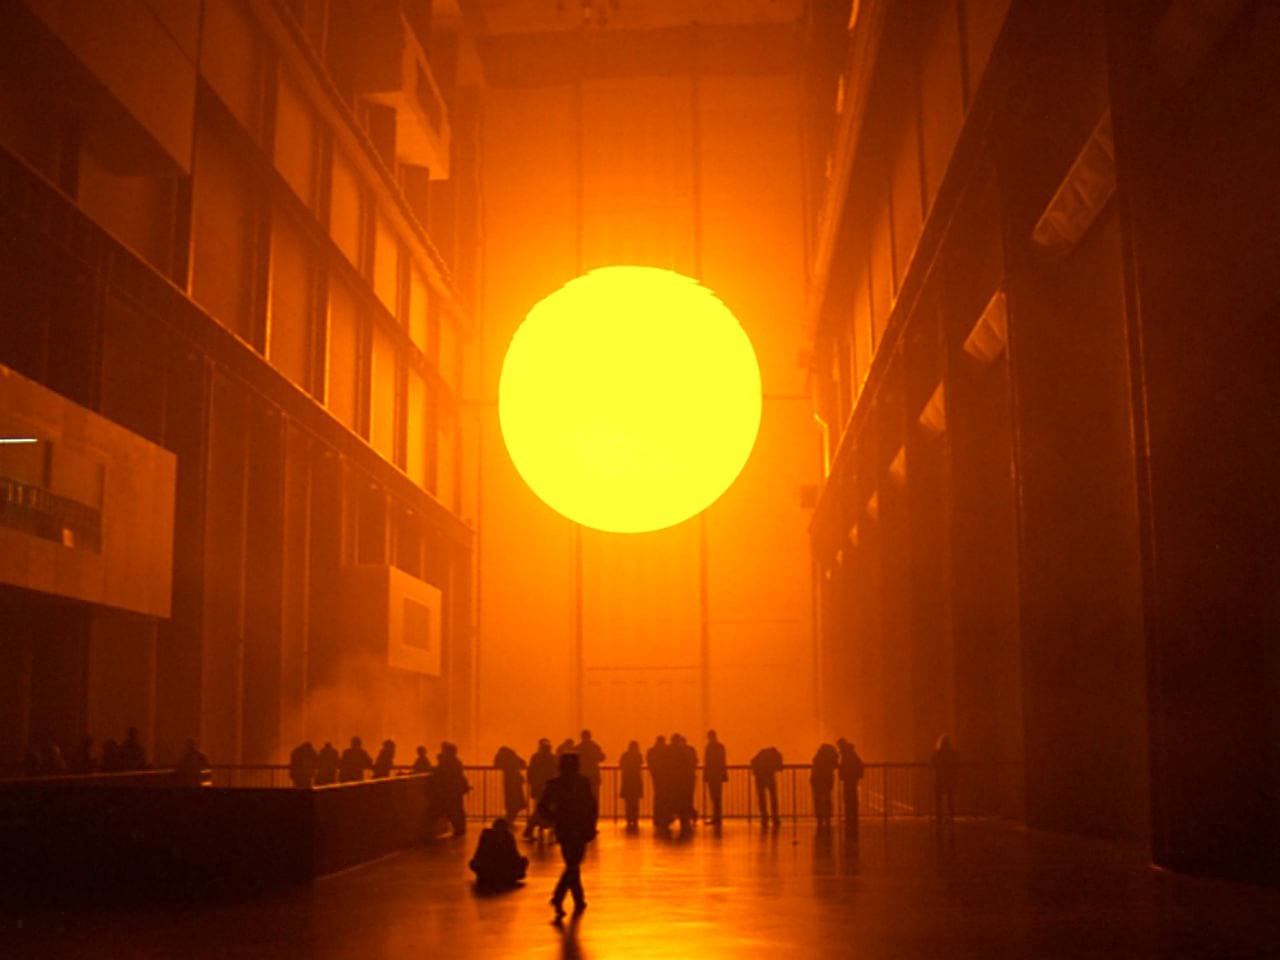 The Unilever Series: Olafur Eliasson, The Weather Project, 2003. Photo: Marcus Leith and Andrew Dunkley, Tate Photography © TATE, 2004